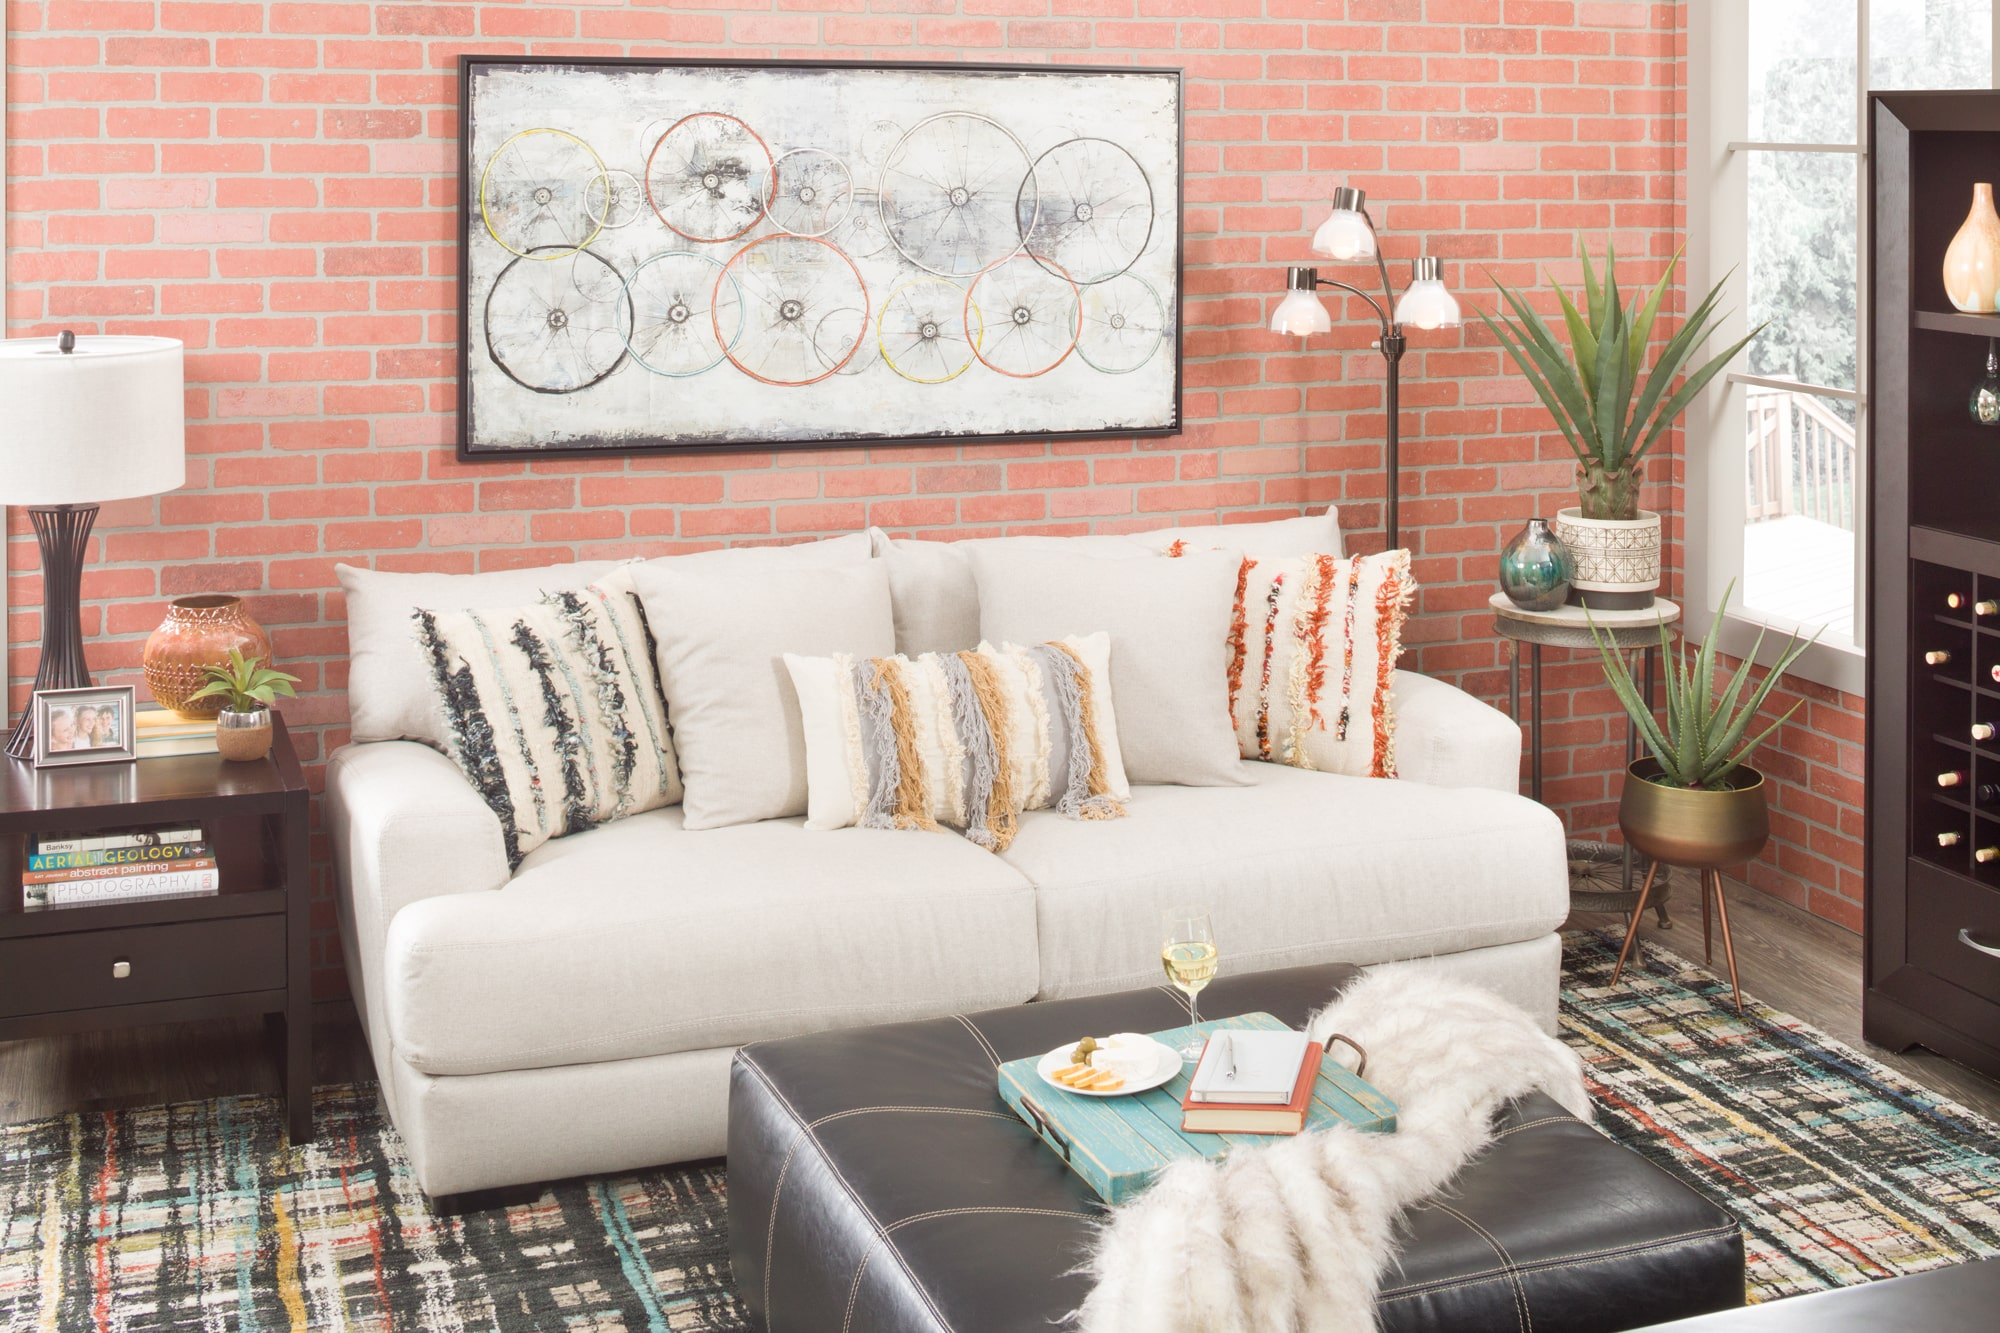 Cozy conversation area with sofa, ottoman, and rug